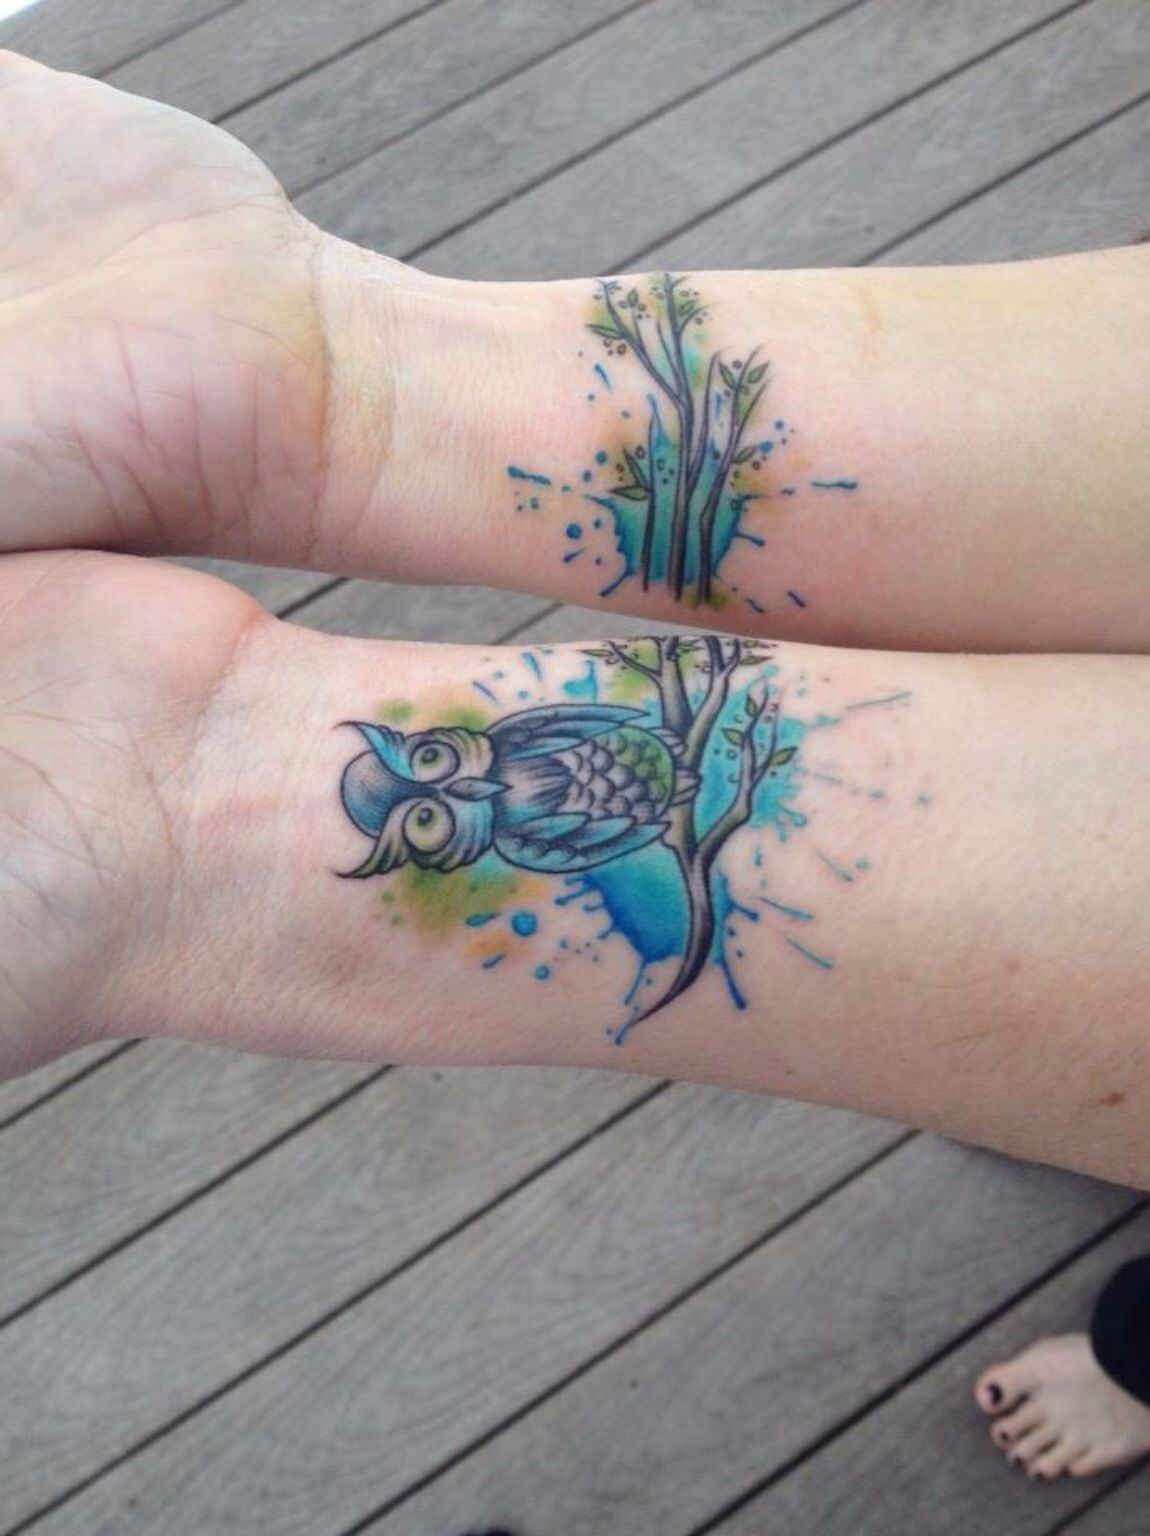 New ink. Watercolor owl wrist tattoo, Lucky Soul Tattoo, Woodbridge, CT. Thanks, Dora Sambuco - you are quite the artist!